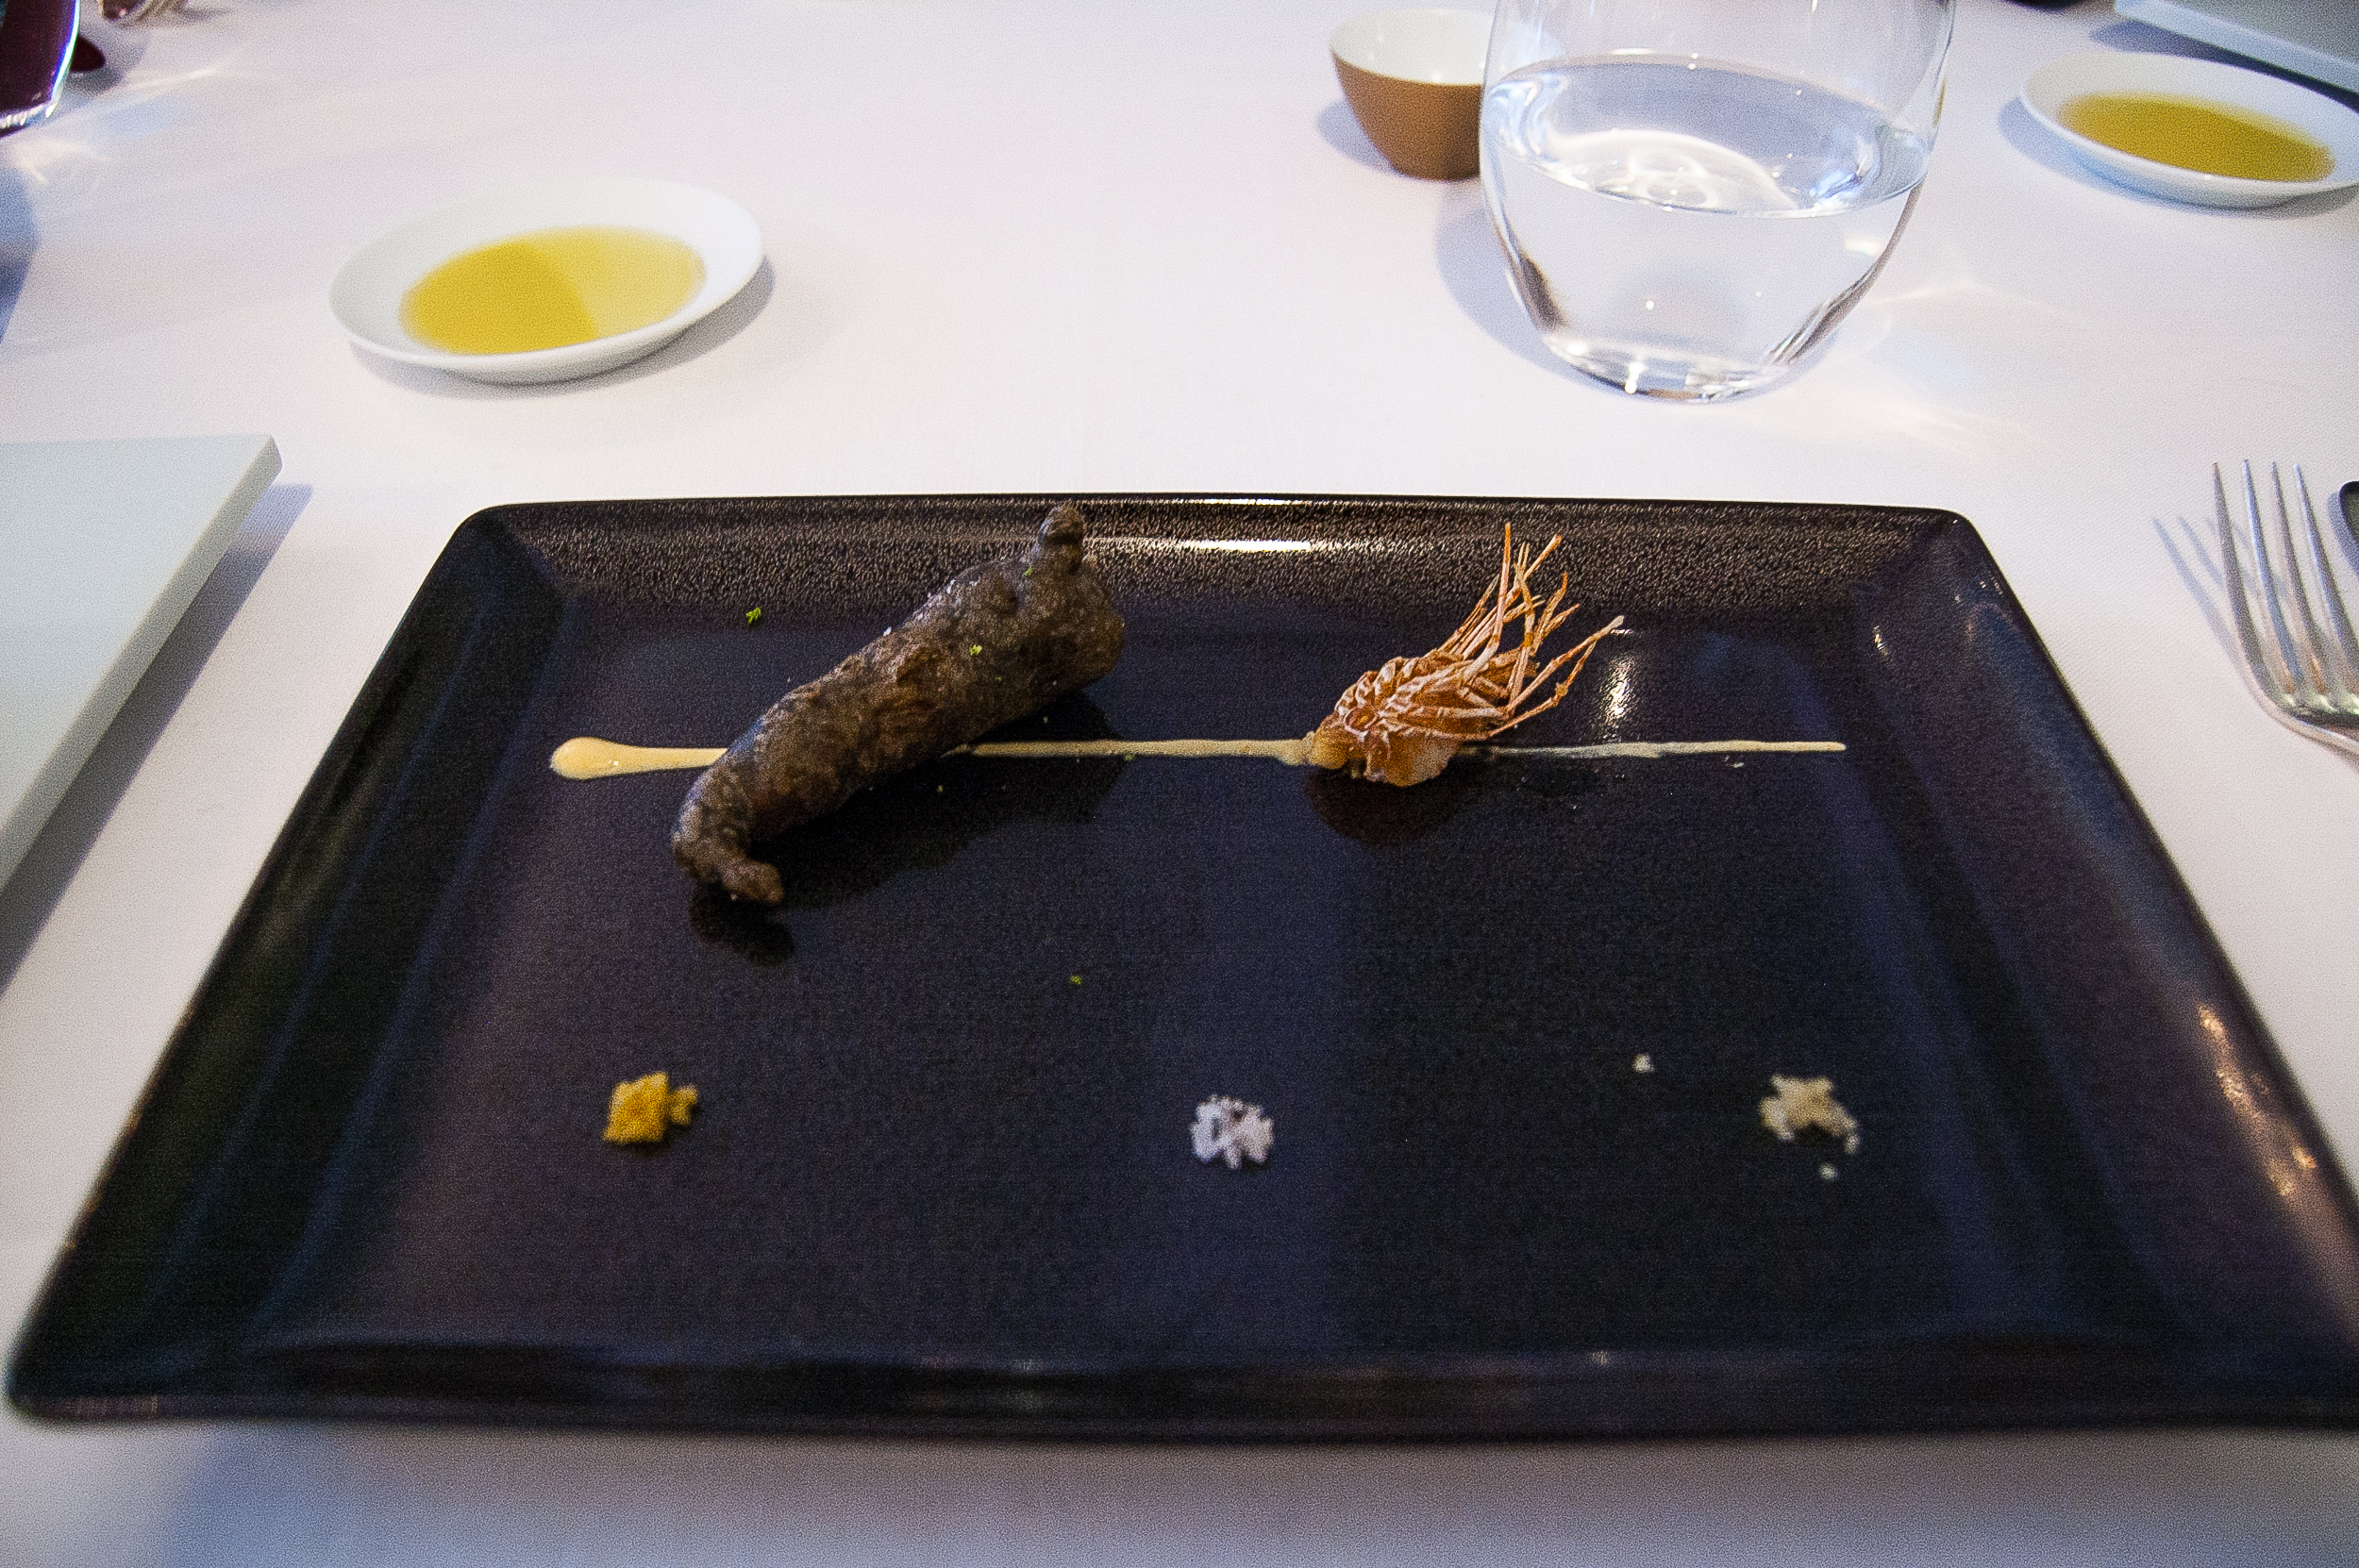 Fried Shrimp, Fried Shrimp Head, Trio of Different Salts